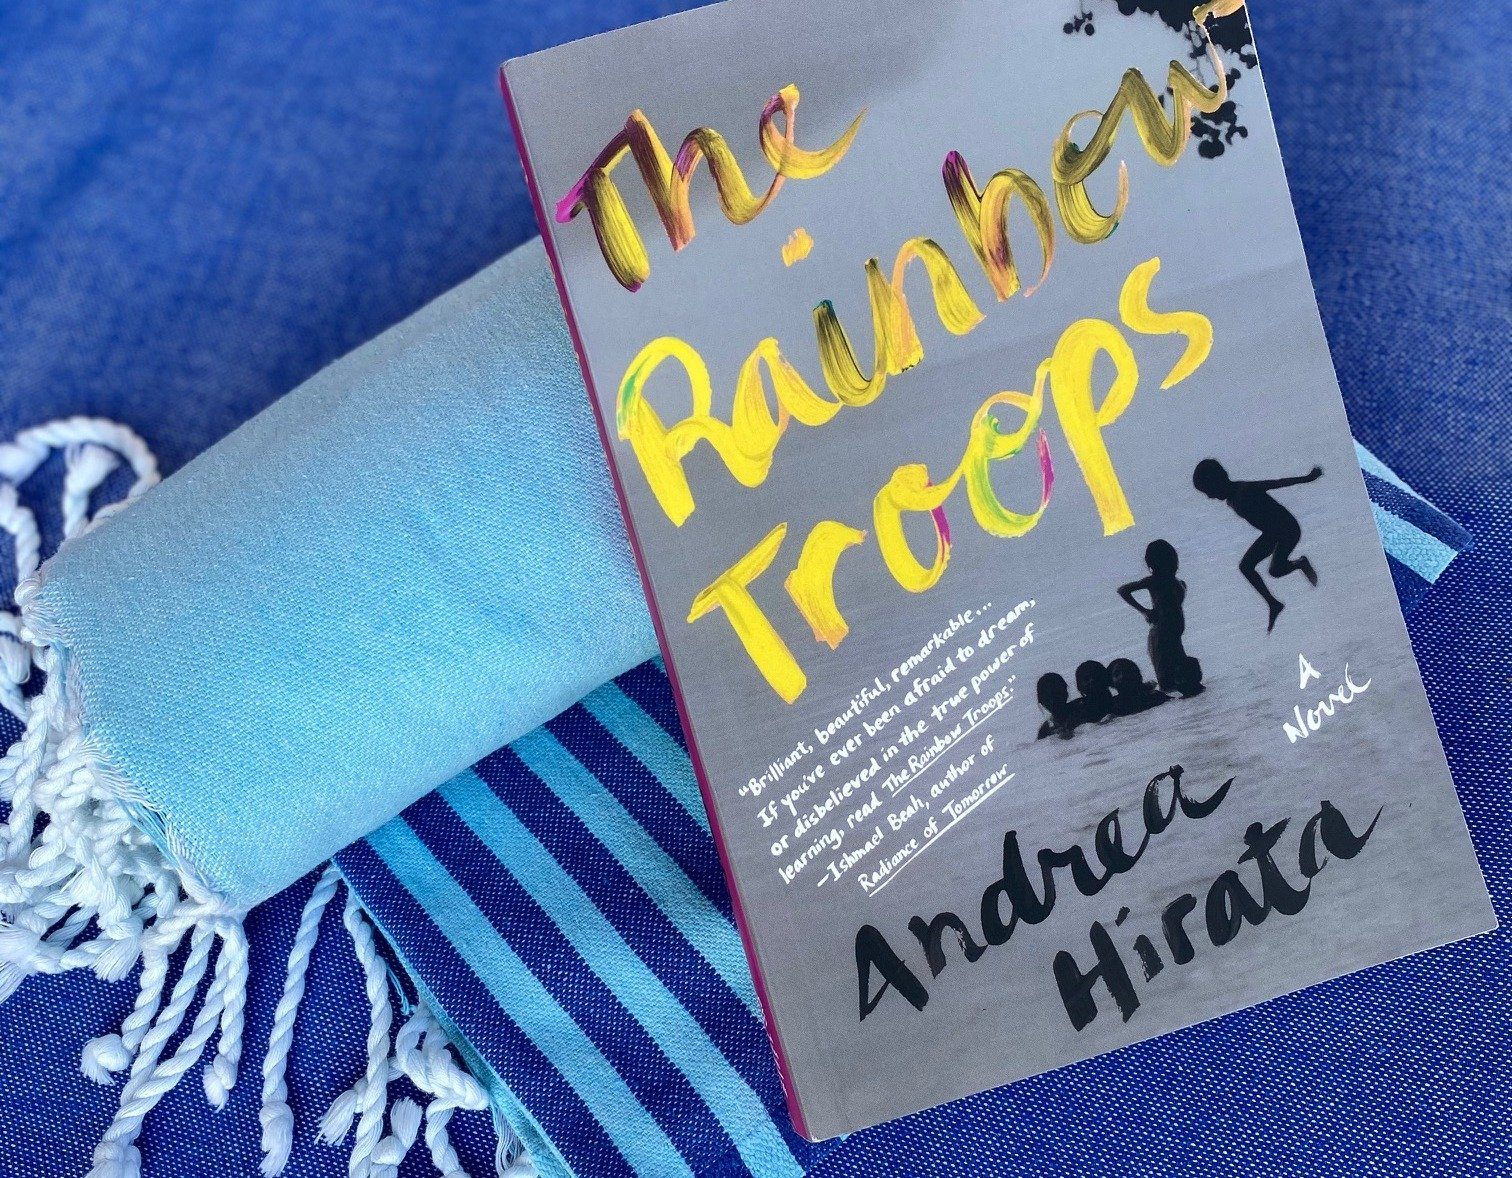 The Rainbow Troops by Andrea Hirata and 5 Indonesian authors you need to add to your reading list